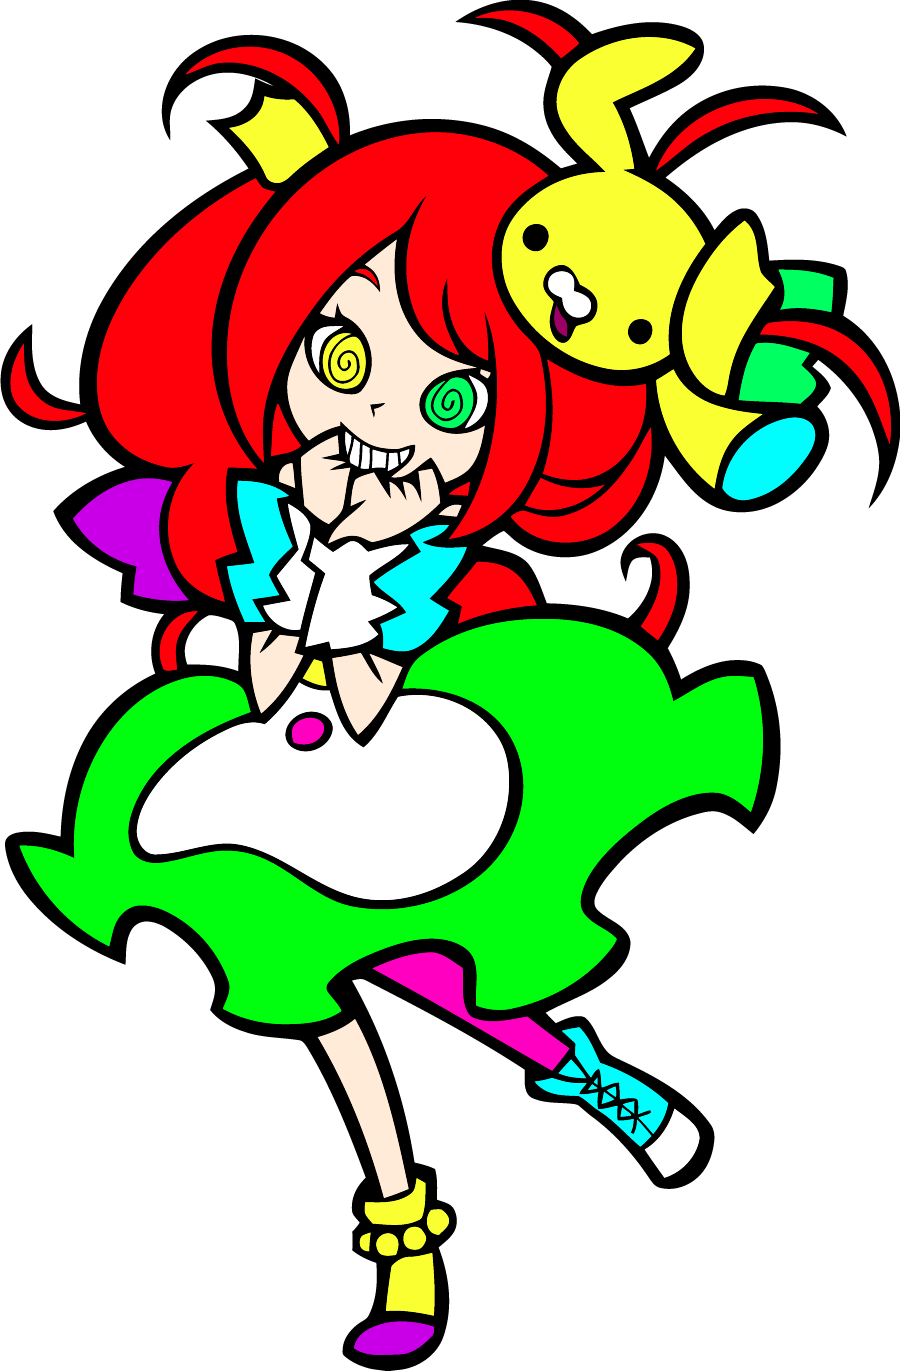 Female Characters With Red Hair Usanuko | Pop'n Music ...